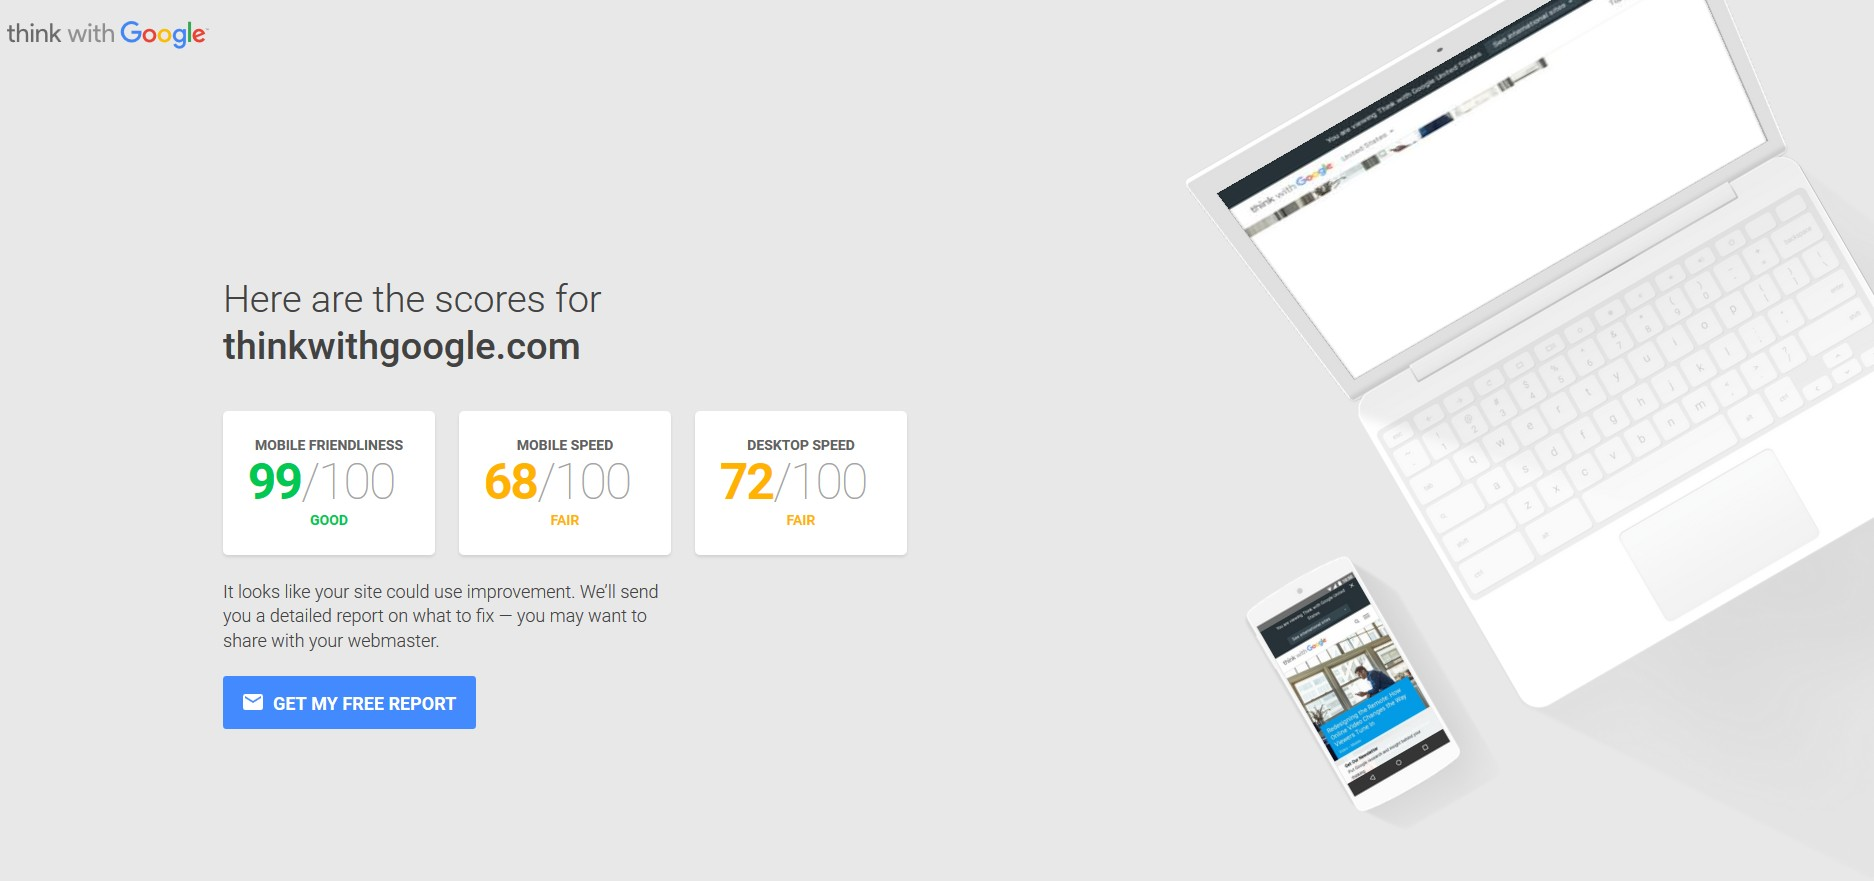 twg website - mobile and speed insights from think with google test tool